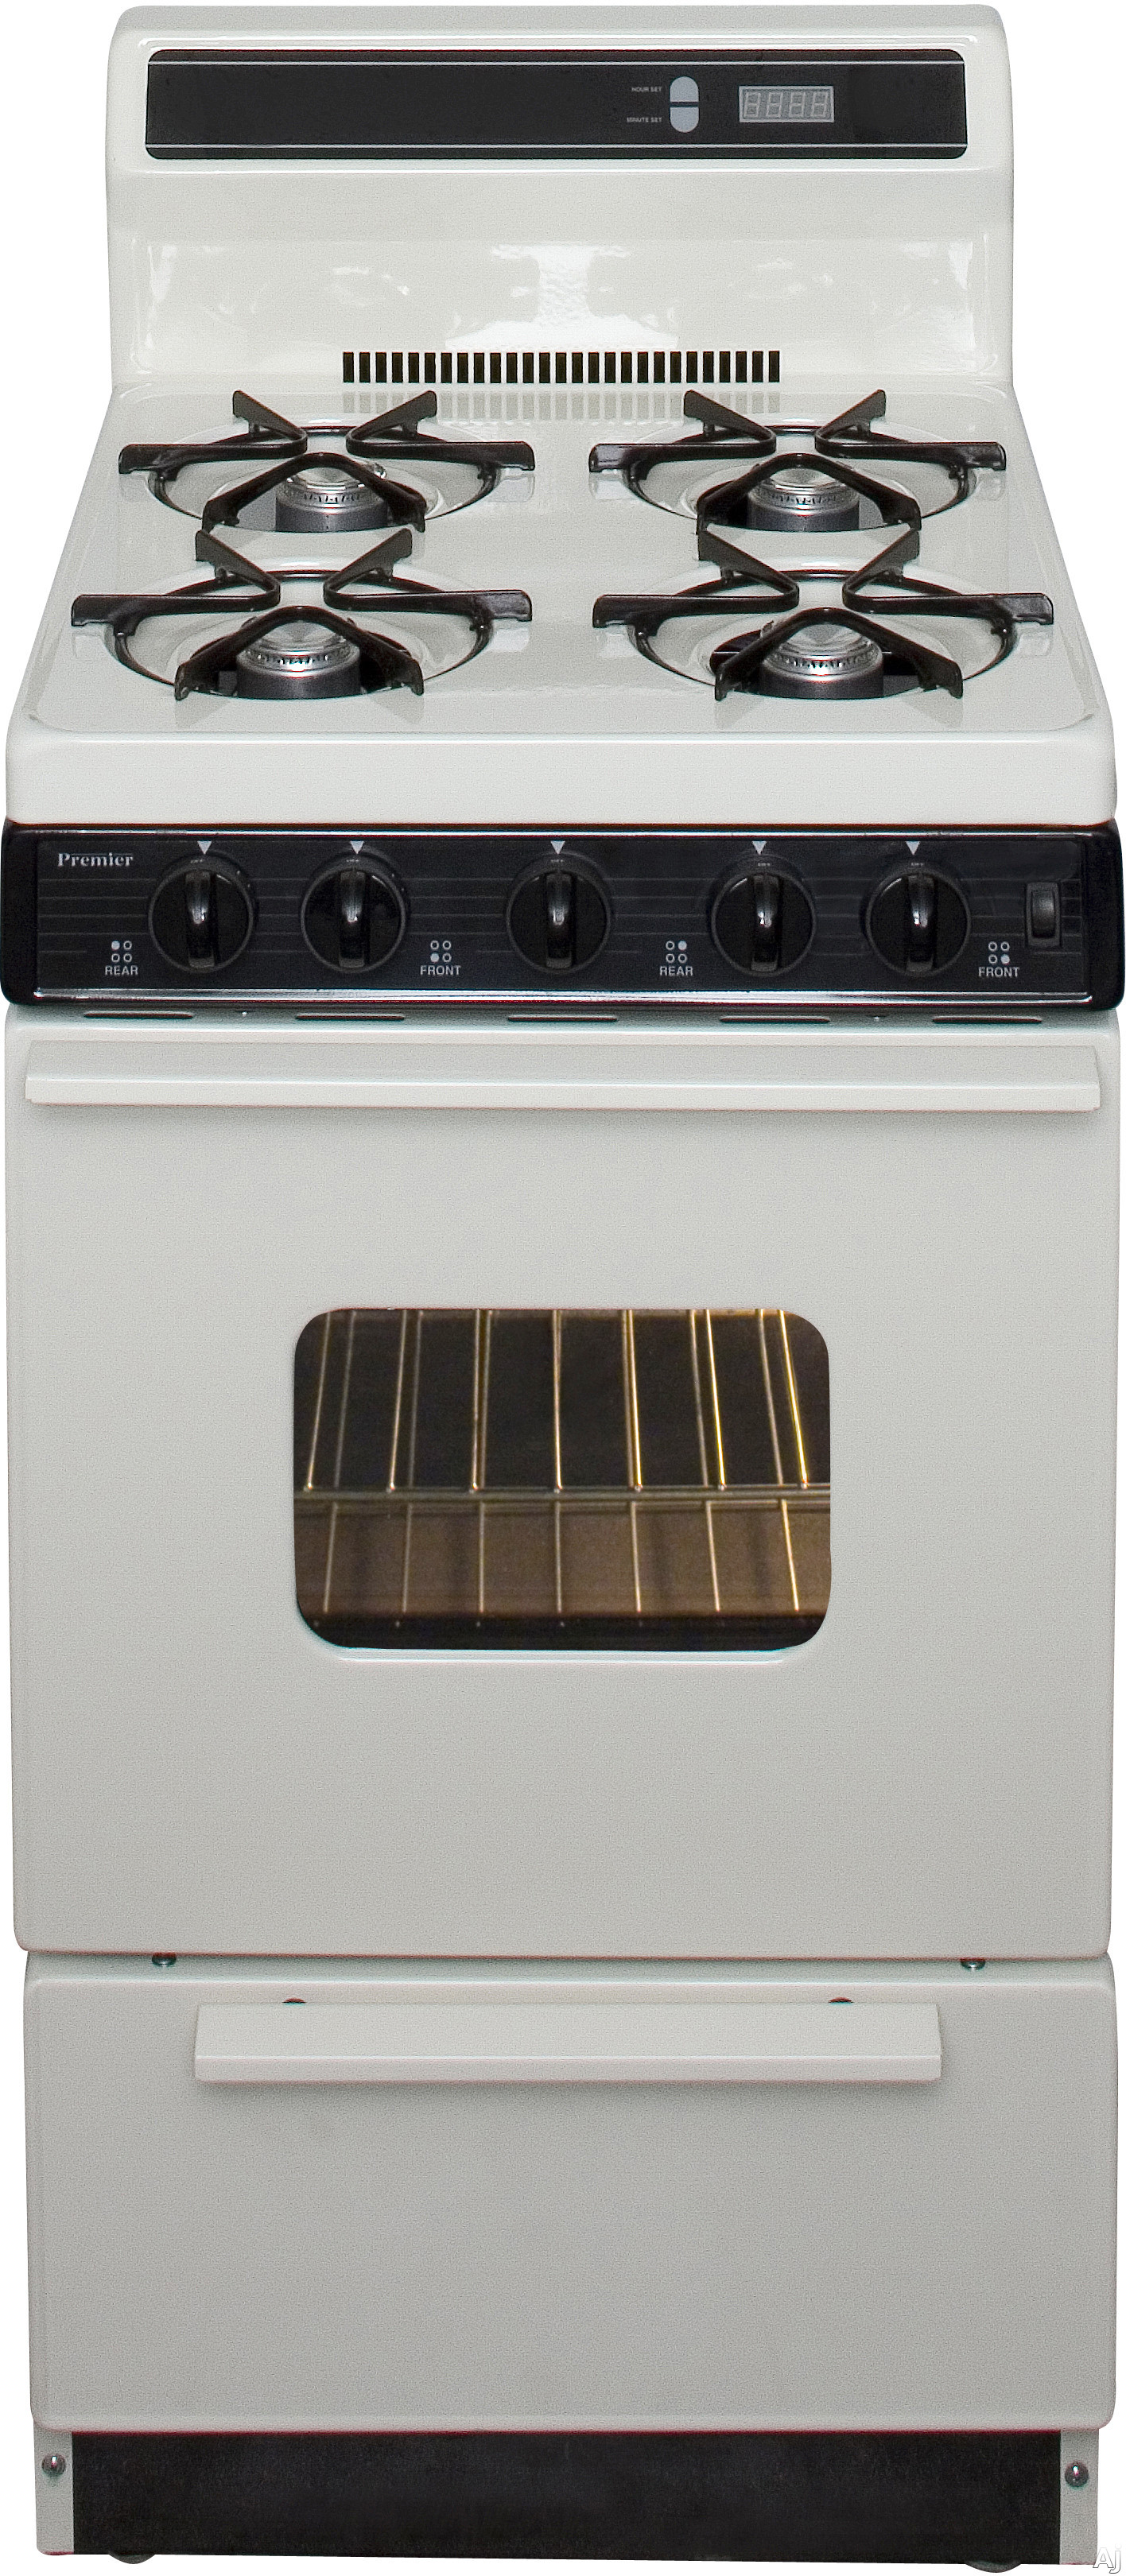 hight resolution of a diagram of whirlpool roper ga oven